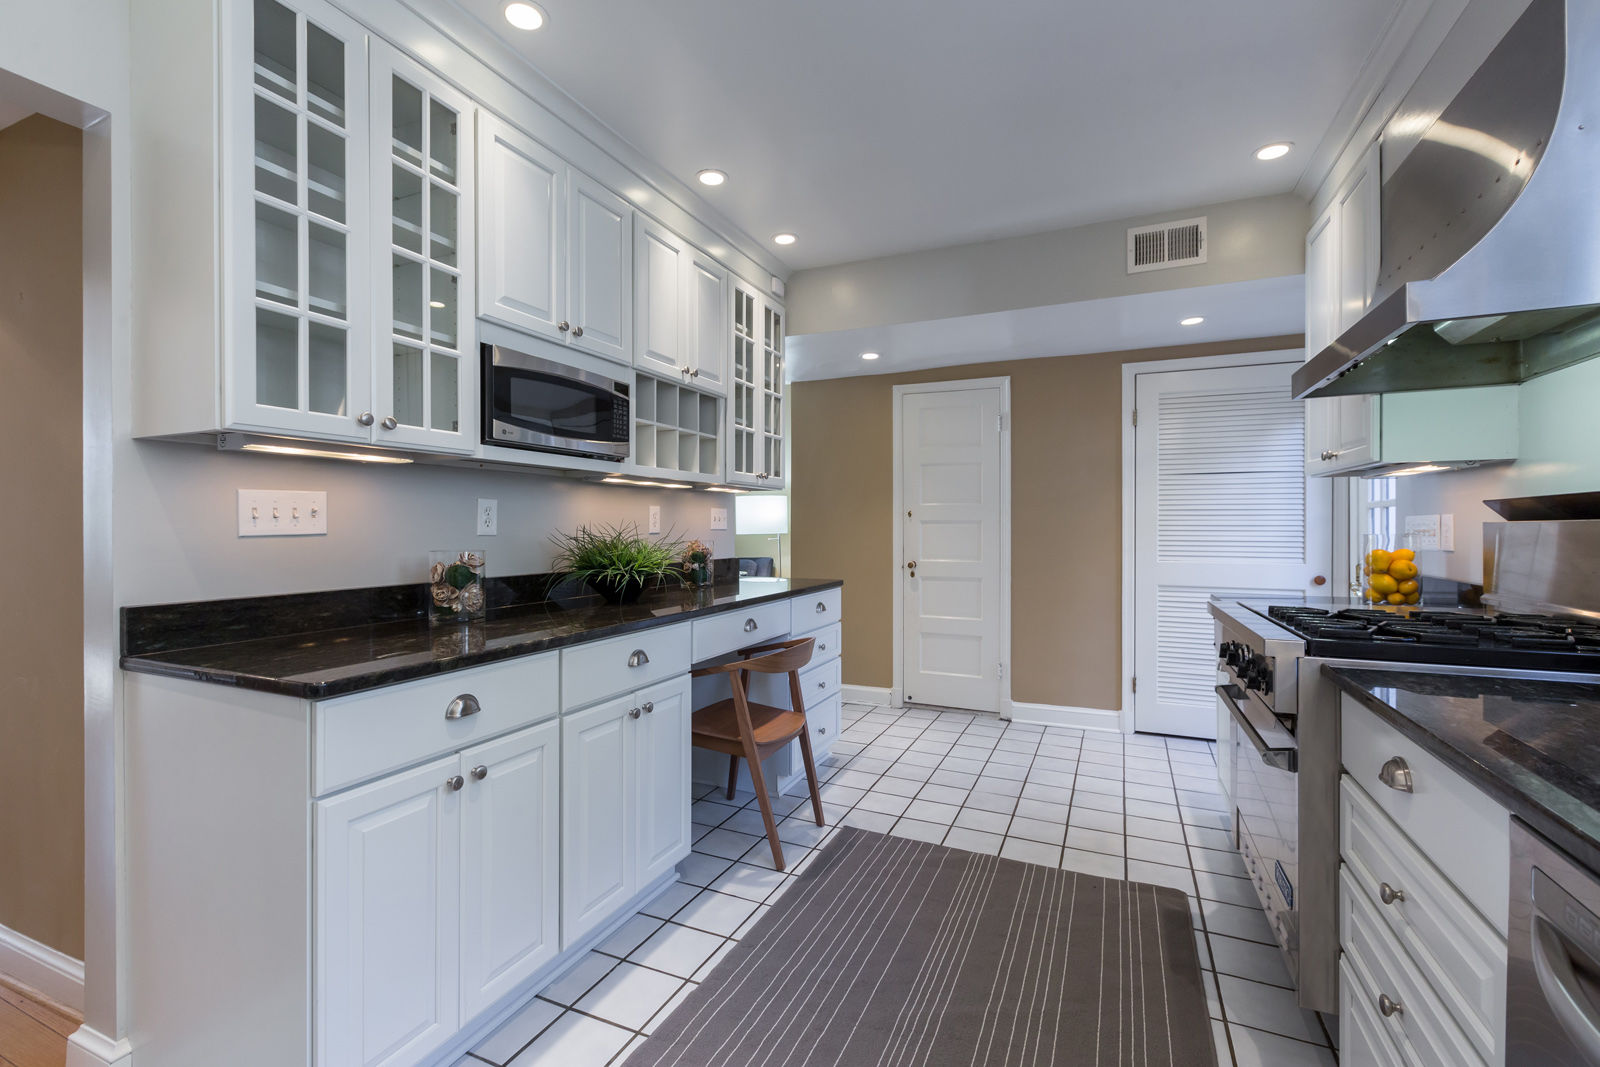 The kitchen of the home. (Courtesy Sean Shanahan)